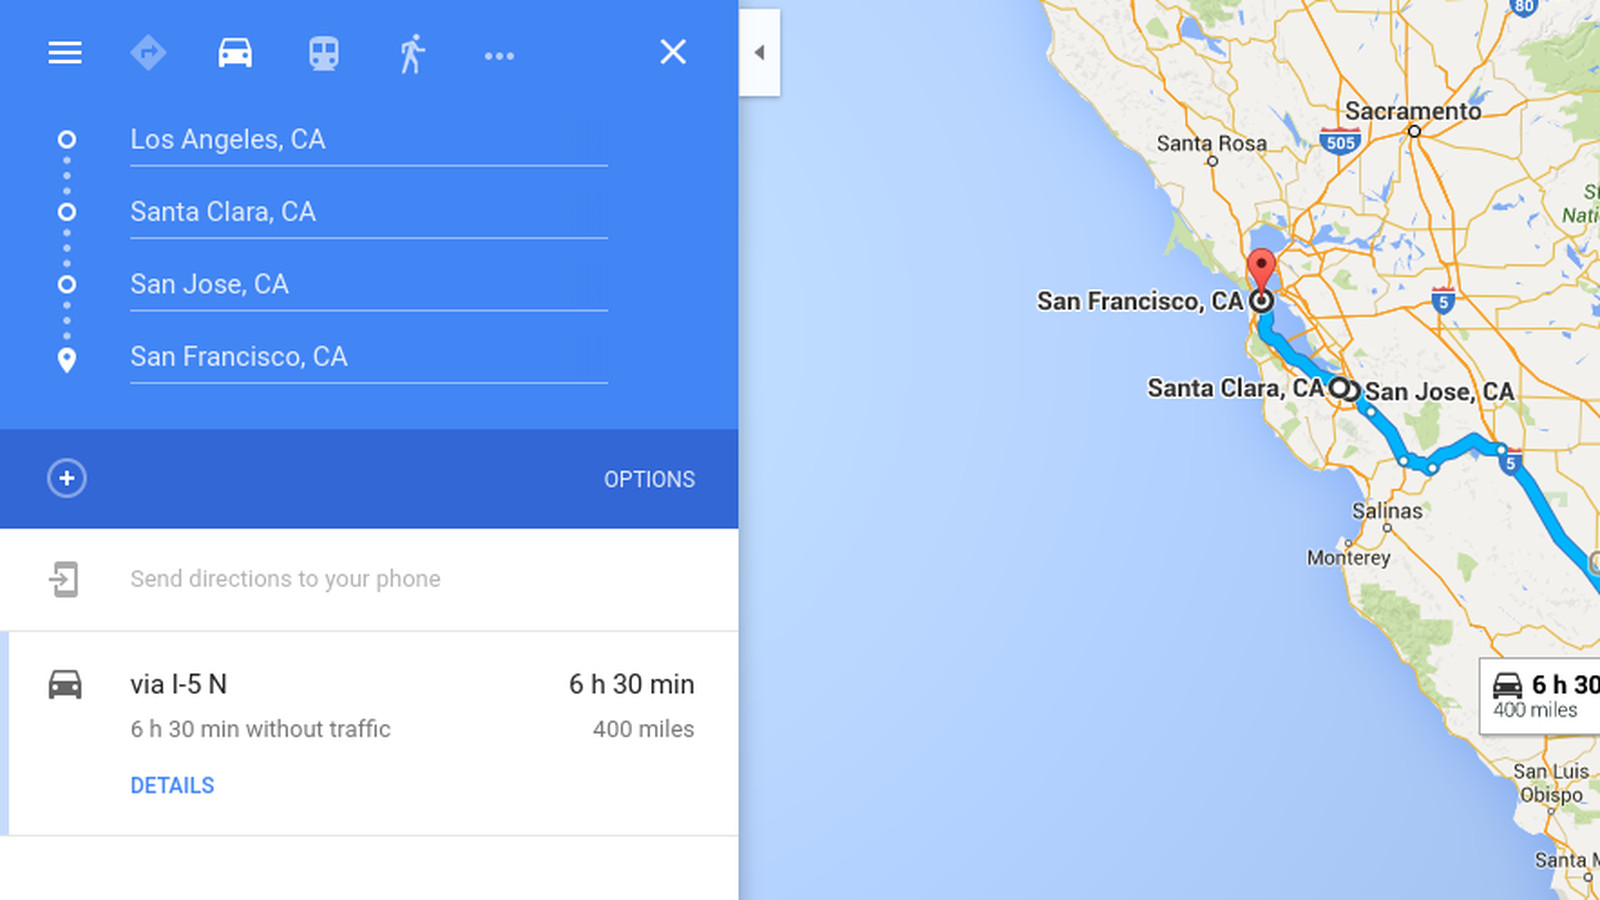 Google Maps for iOS now supports multiple destinations - The